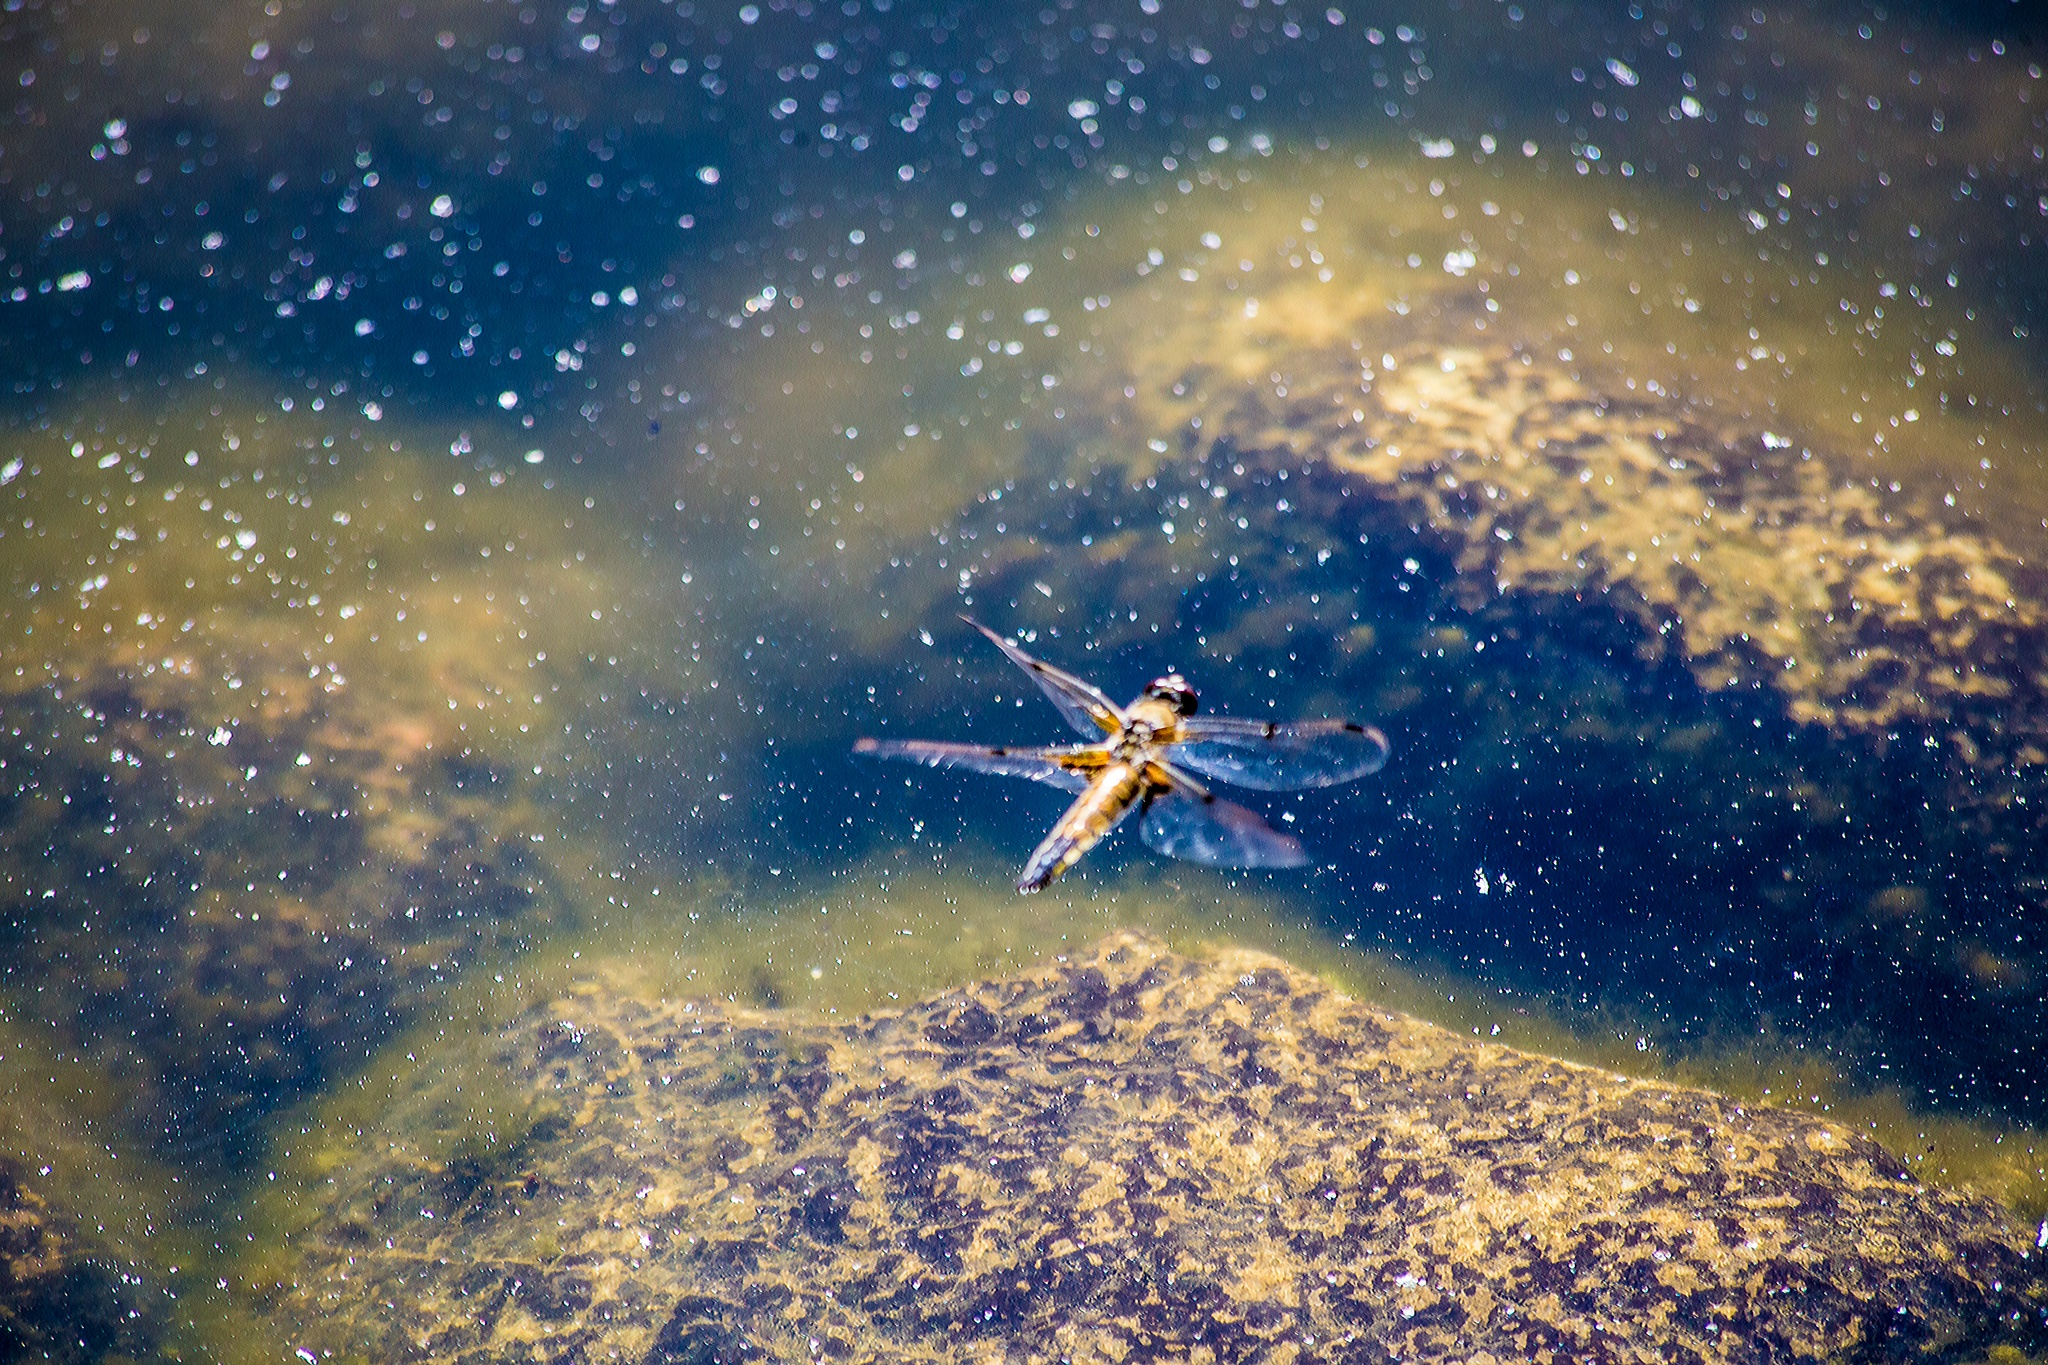 Dragonfly by MaxBSimic